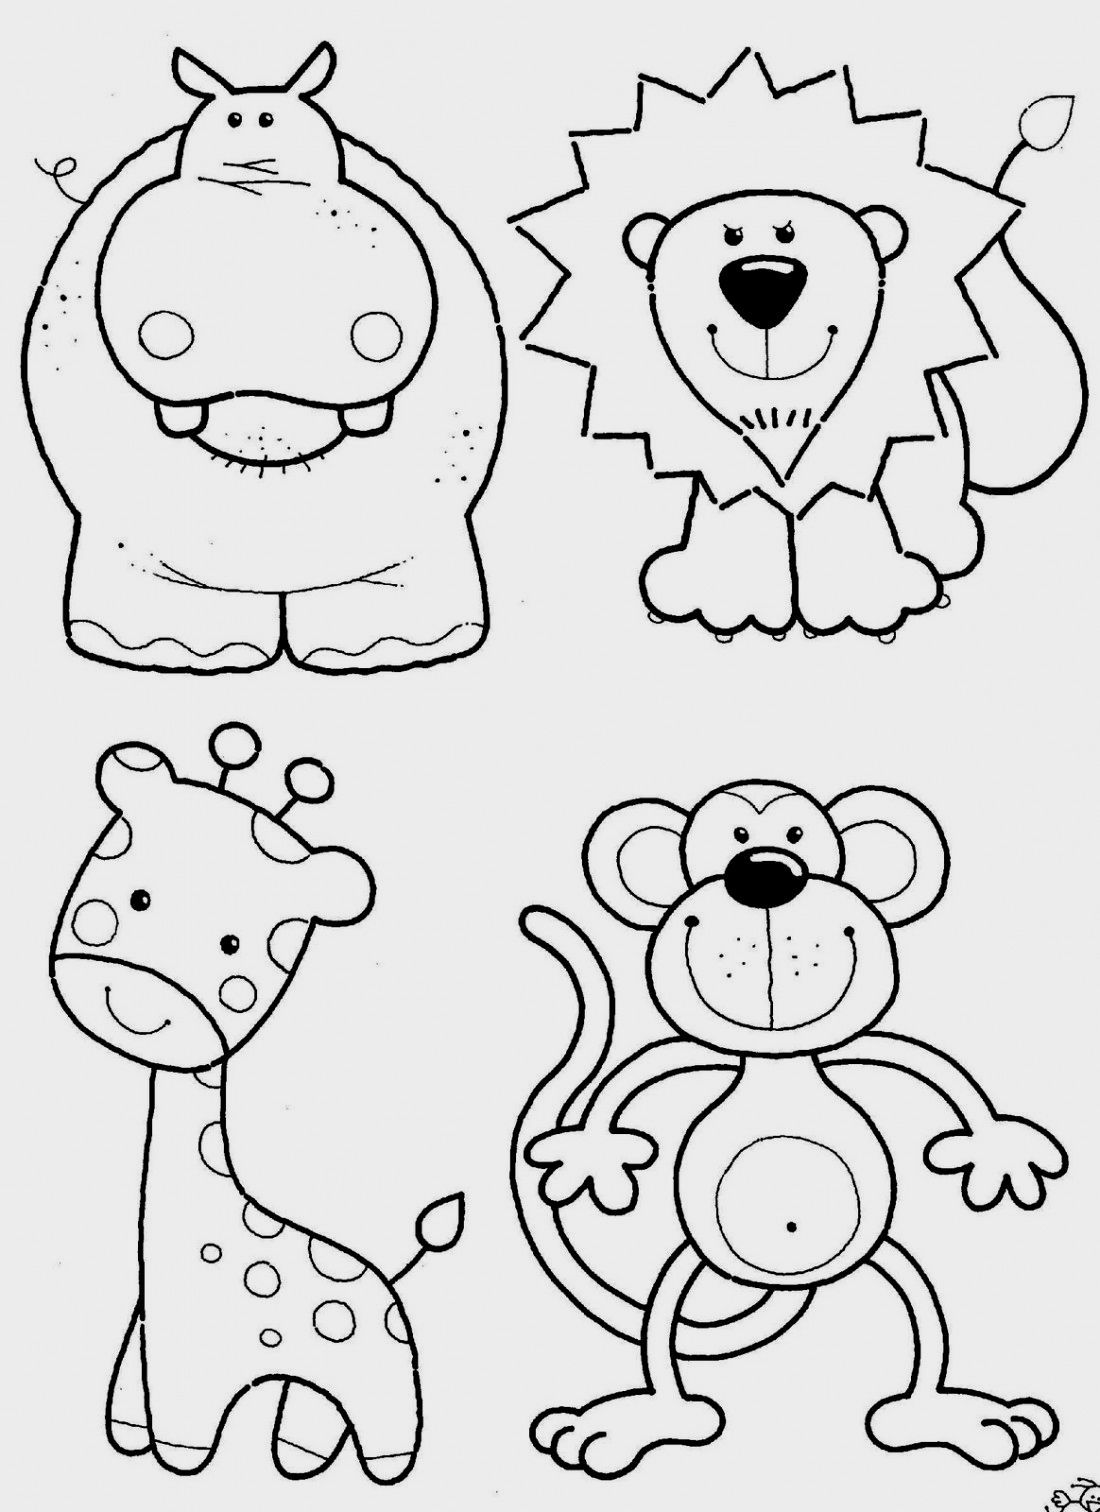 Free coloring pictures zoo animals - Free Animal Coloring Pages Kids I D Color Or Paint These And Use Them To Make Kids Bday Cards